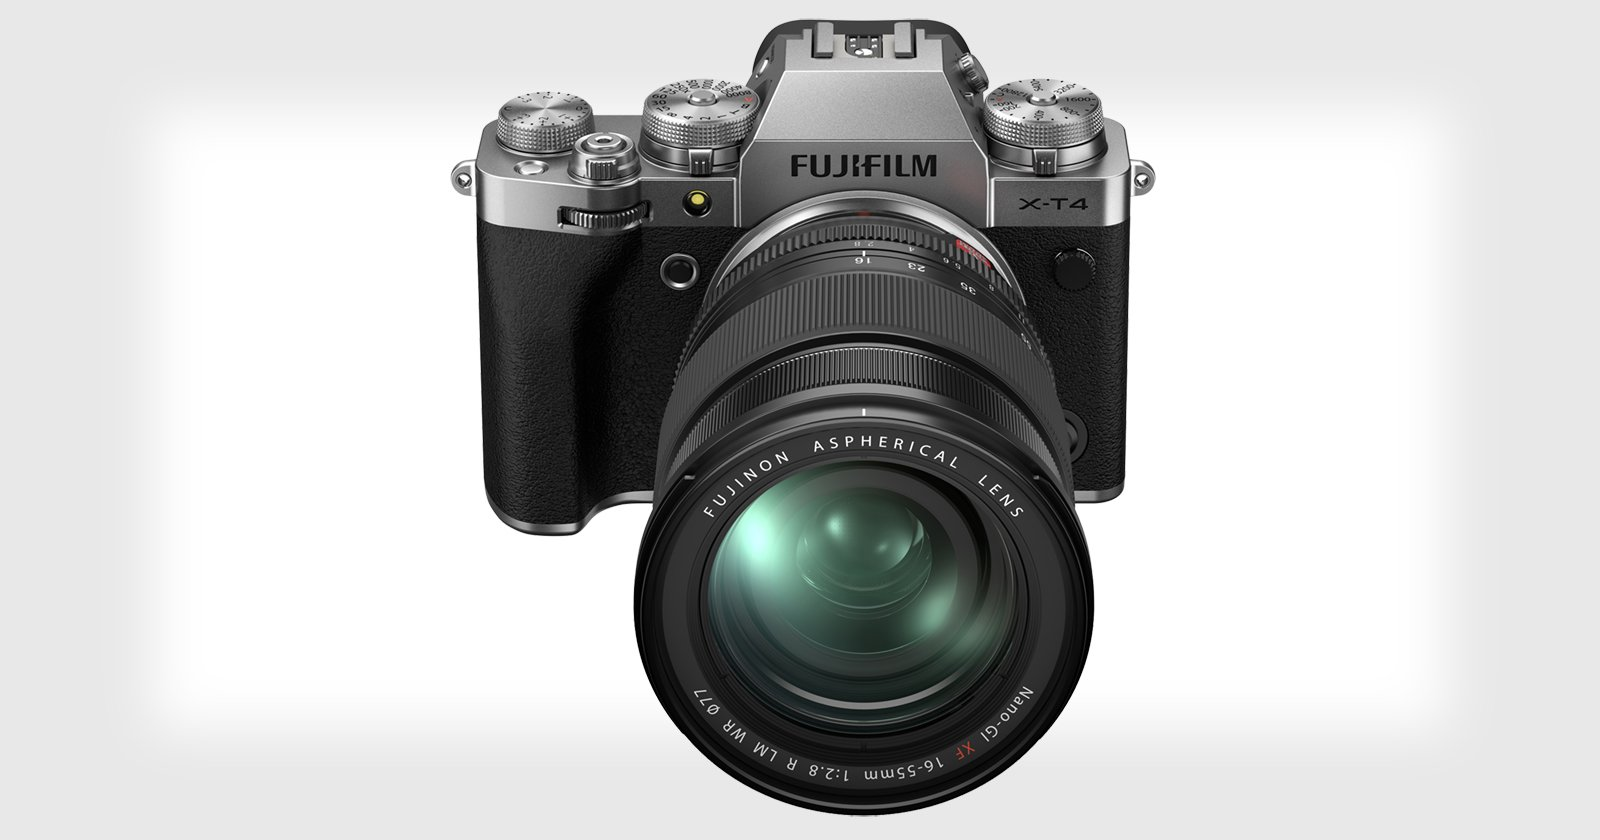 Fuji Announces the Flagship X-T4 with IBIS, Bigger Battery, and New Shutter